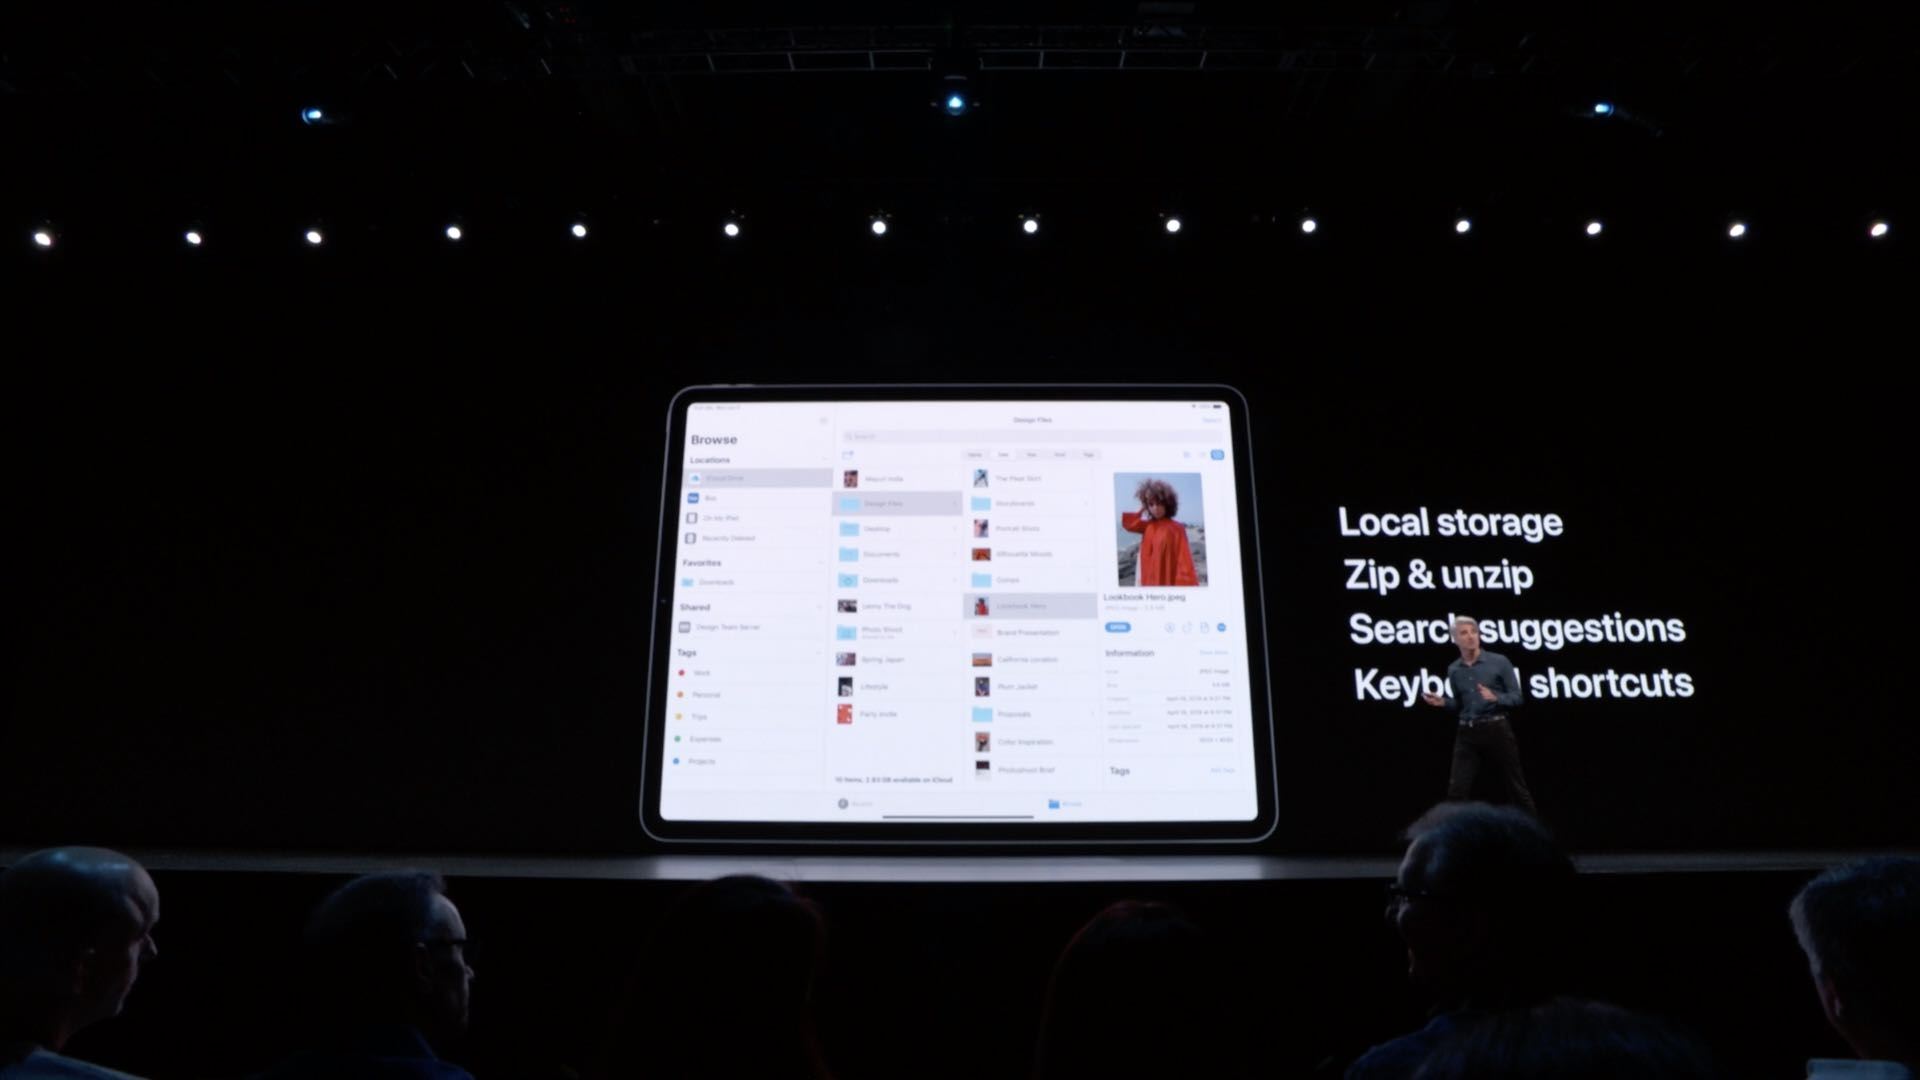 iOS 13 brings a more advanced Files app with Mac-like search, ZIP